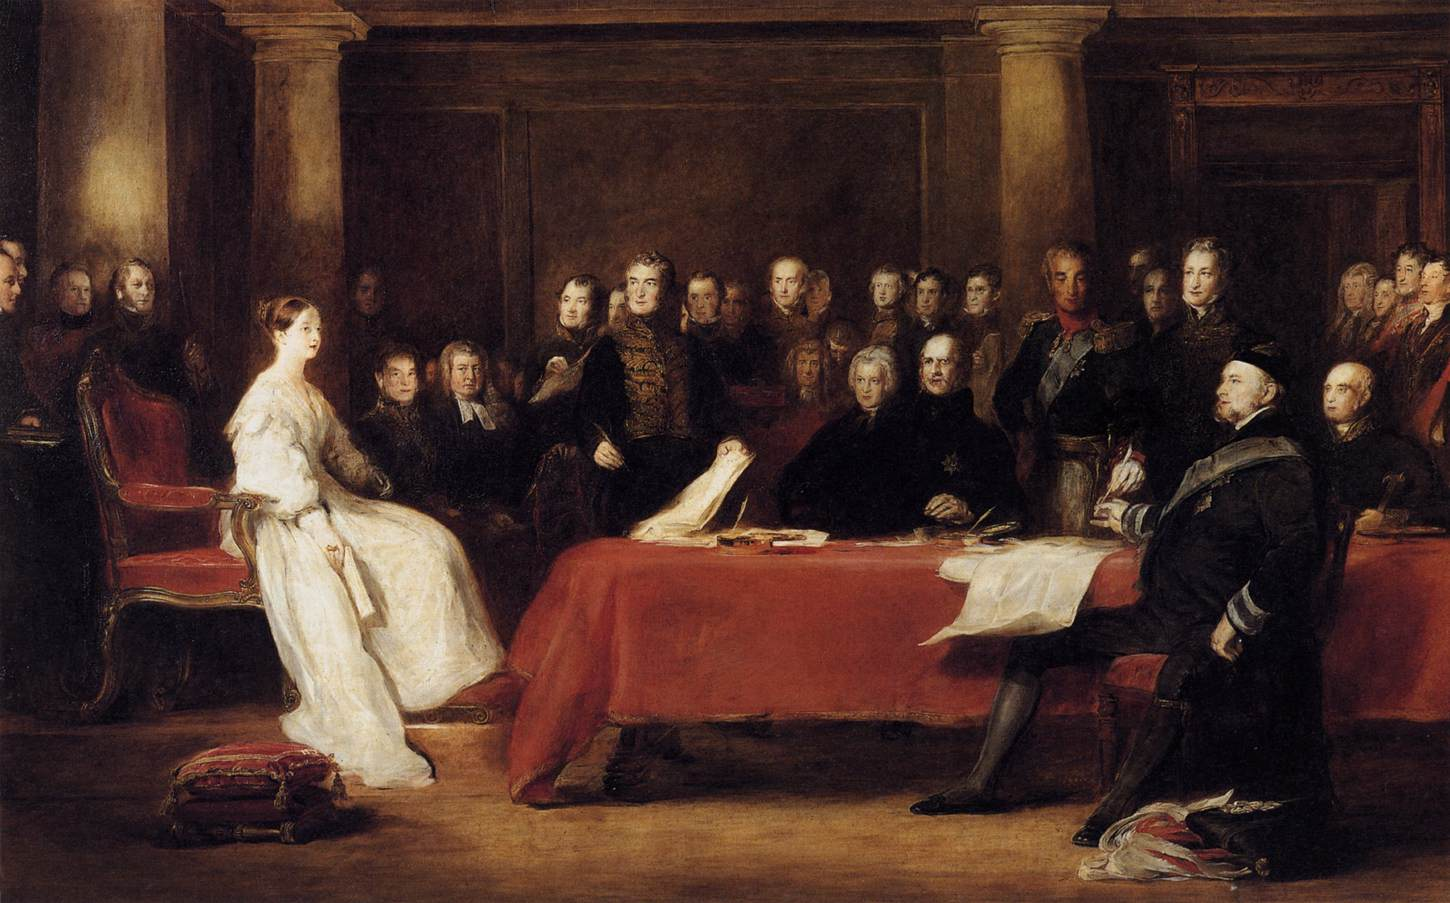 queen victoria and benjamin disraeli relationship with god